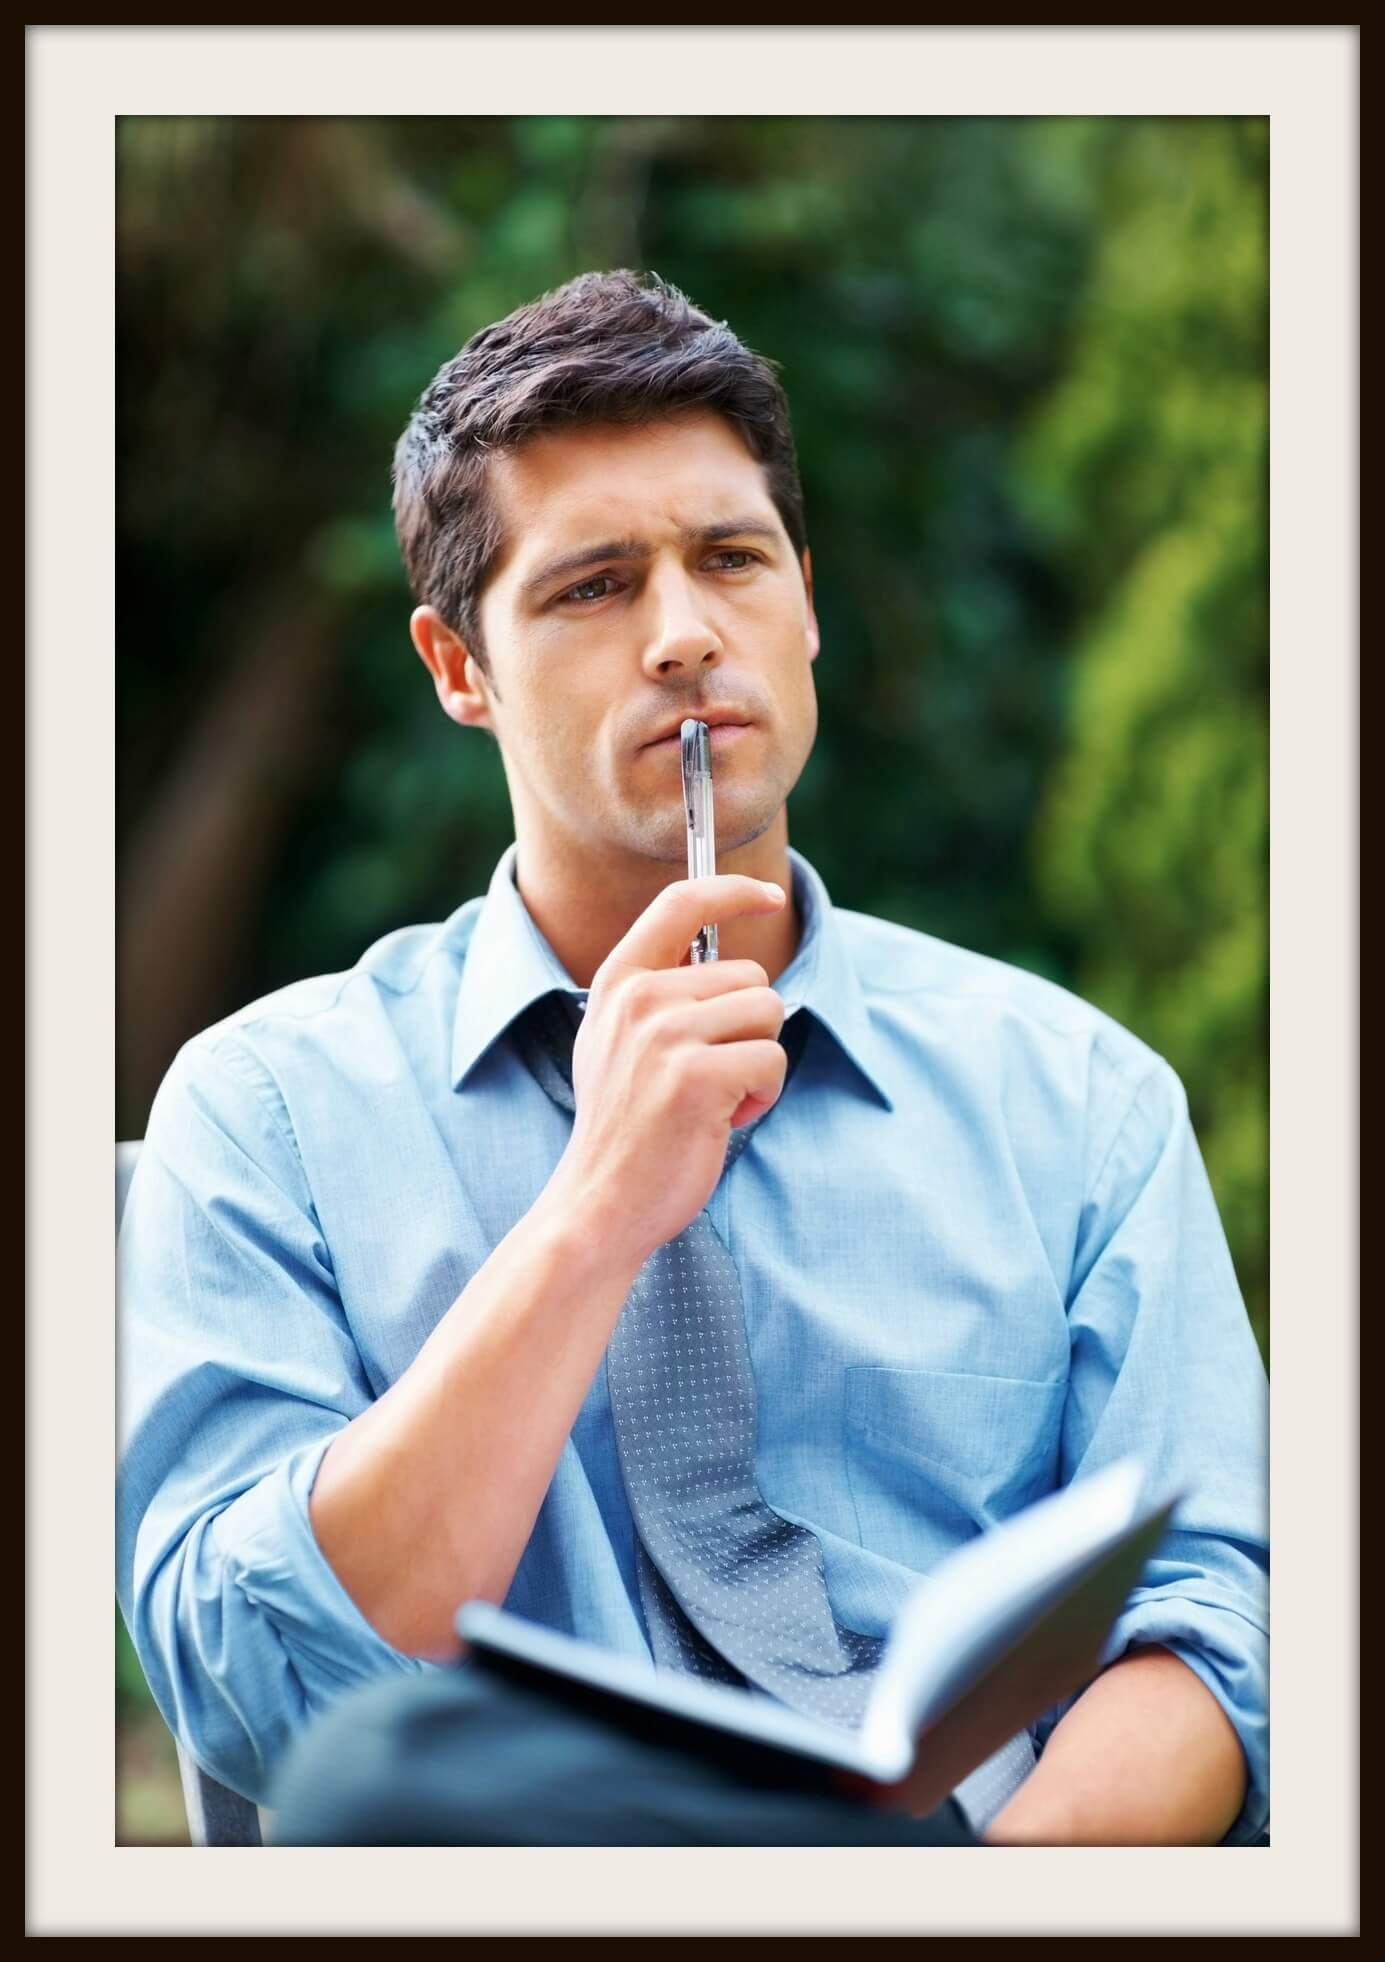 Business man sitting outdoors with book, looking into distance